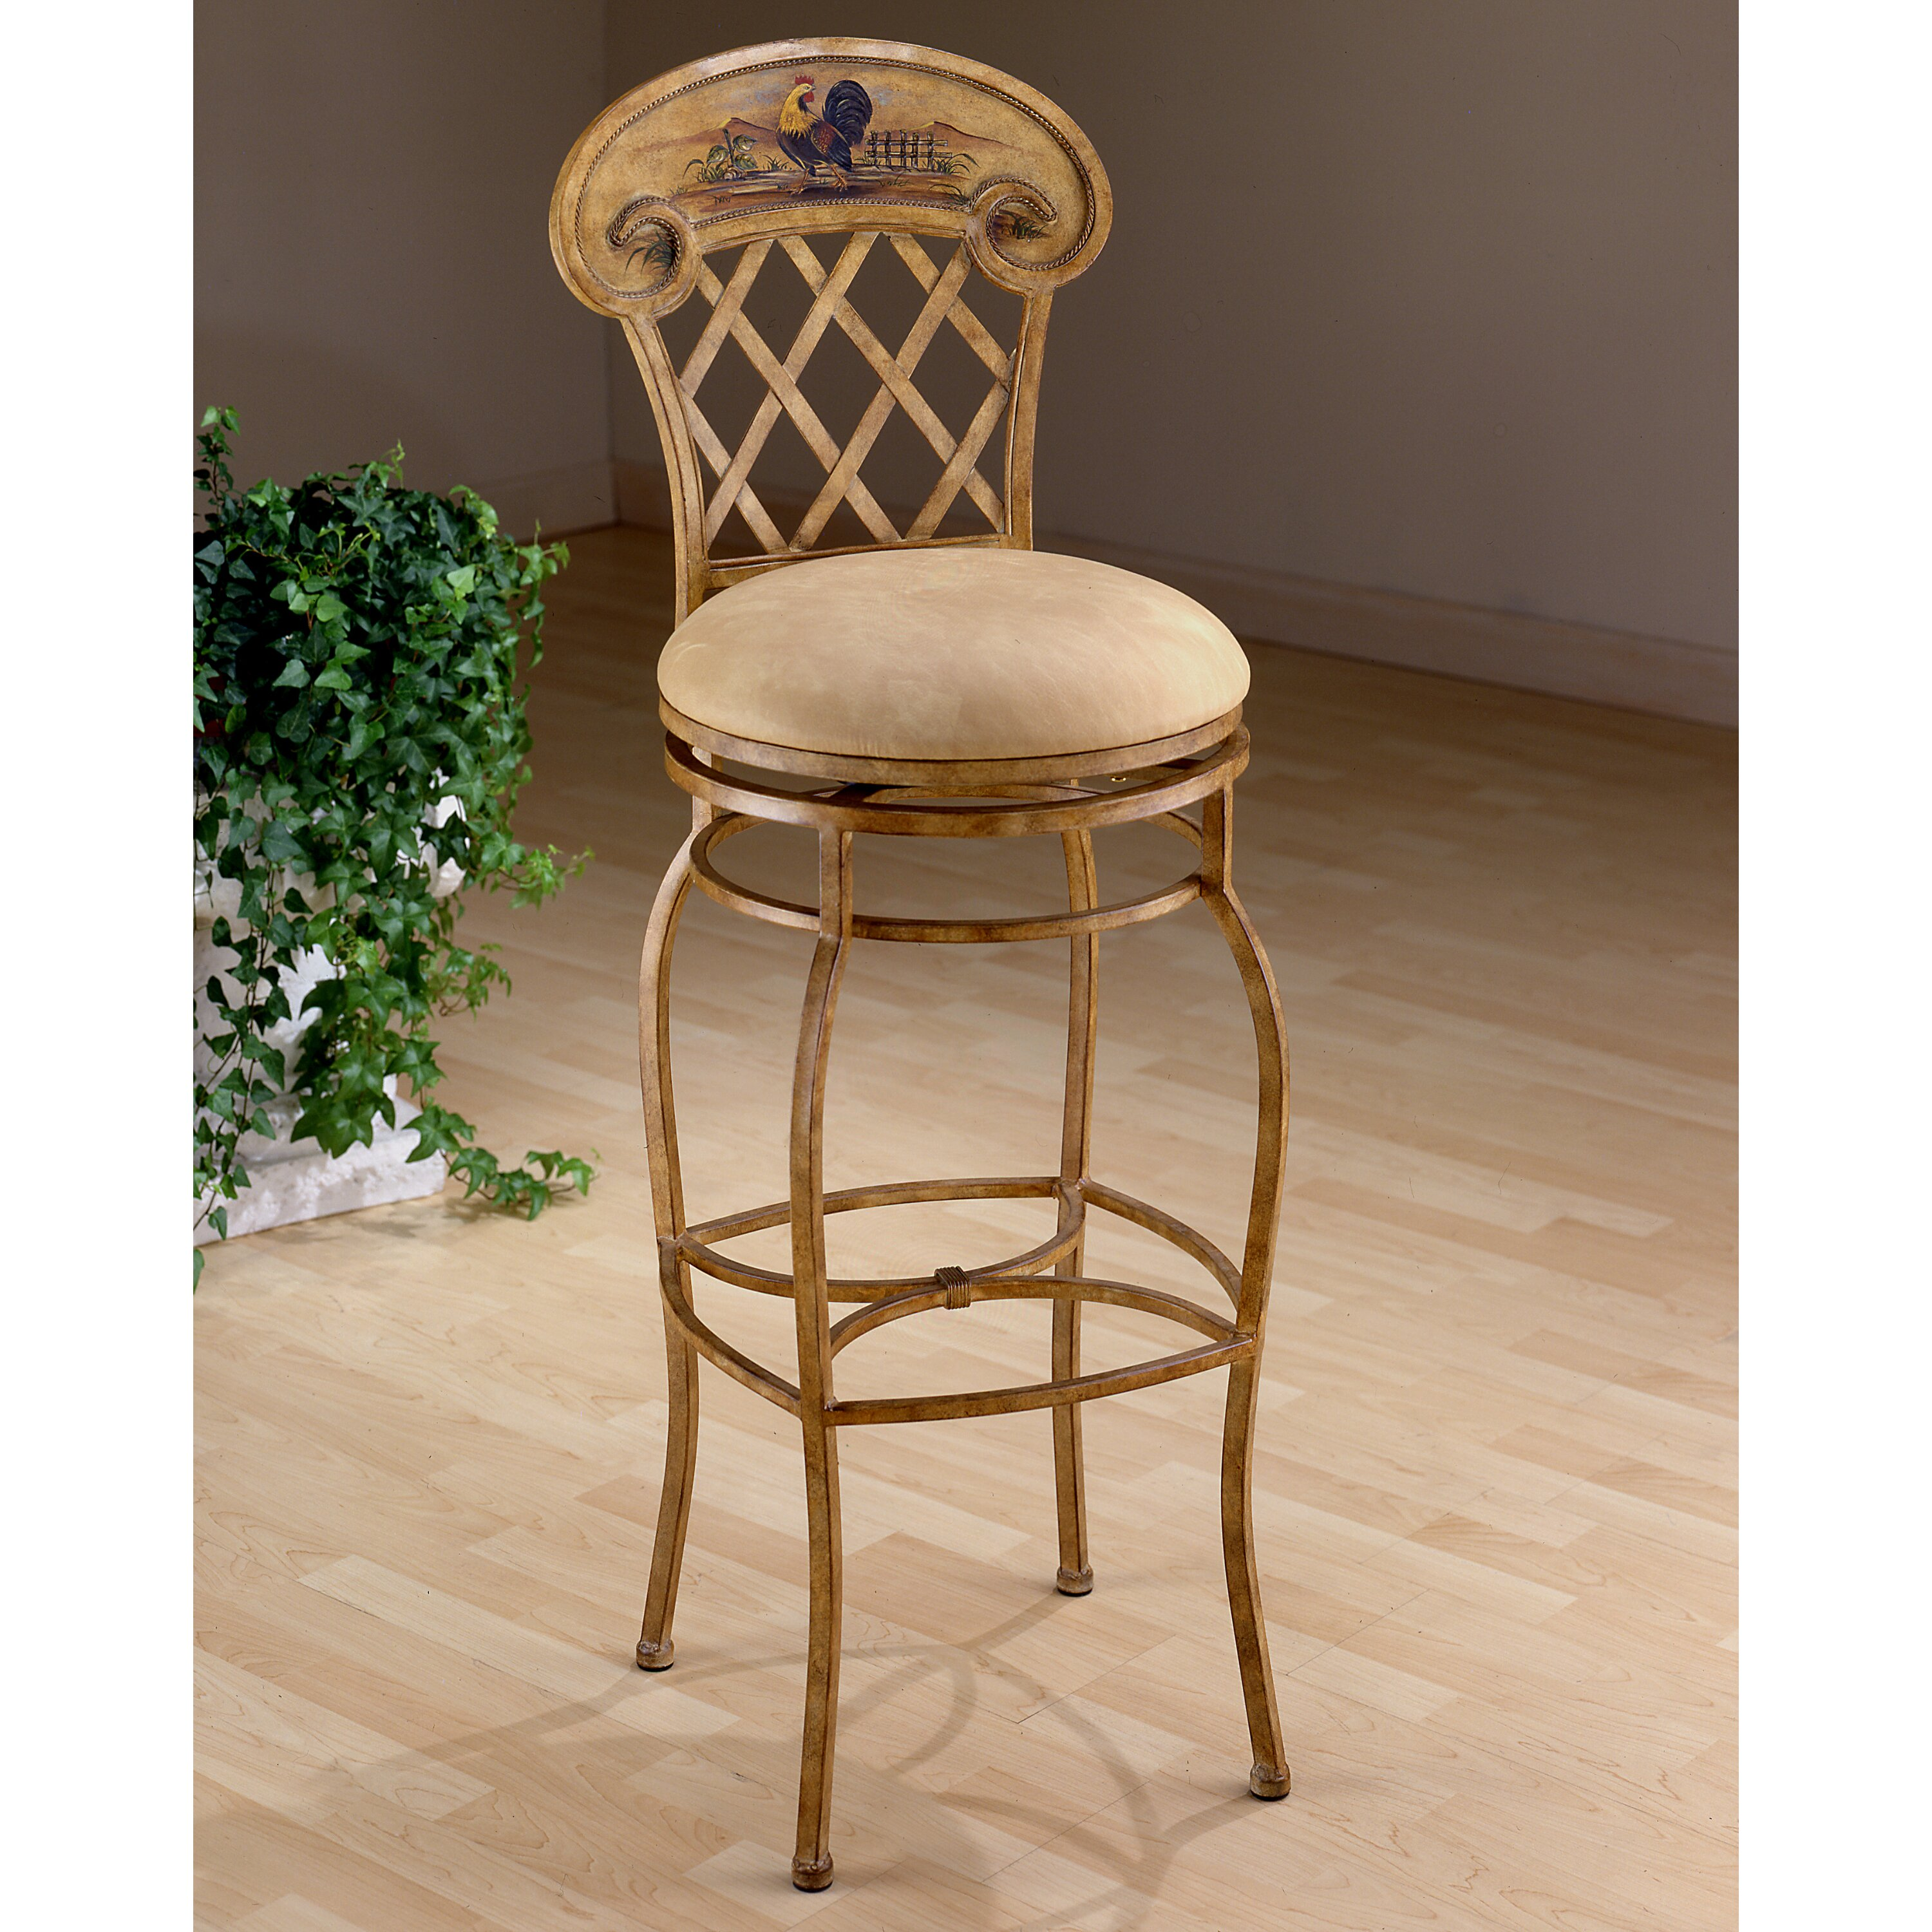 Hillsdale Rooster 26 5 Quot Swivel Bar Stool Amp Reviews Wayfair